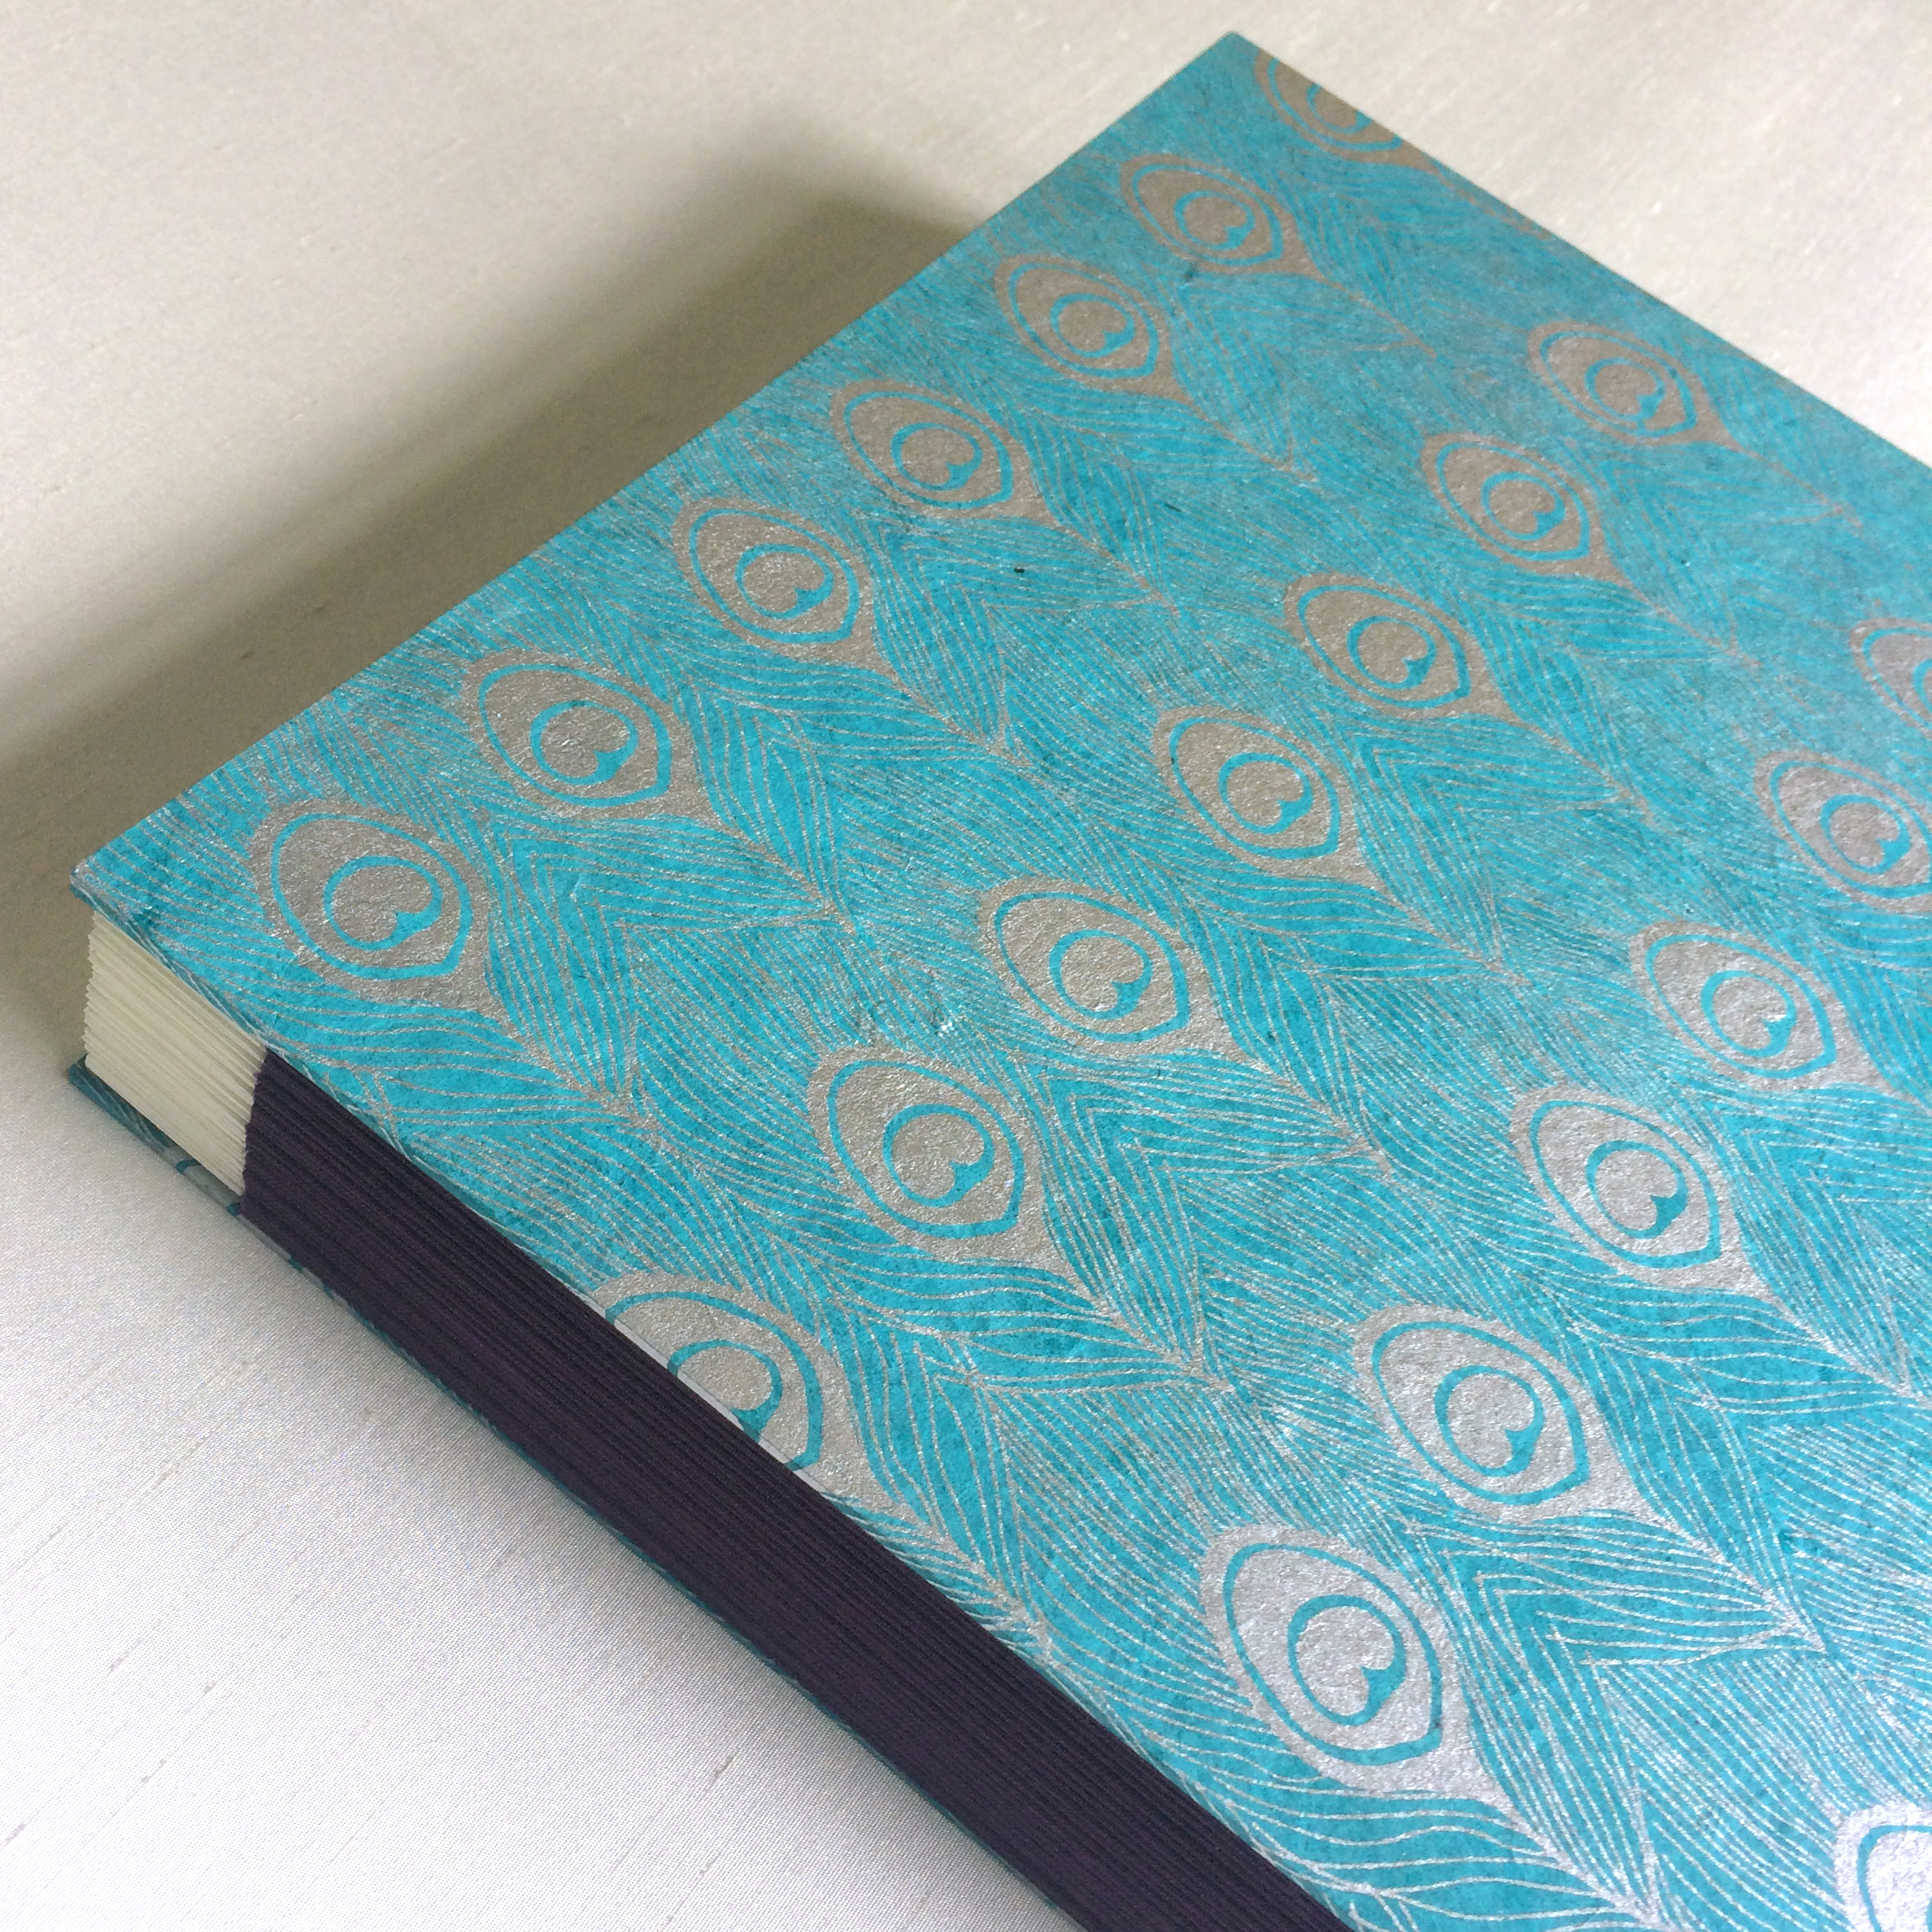 Handmade paper with peacock feather on cover of handcrafted photograph album